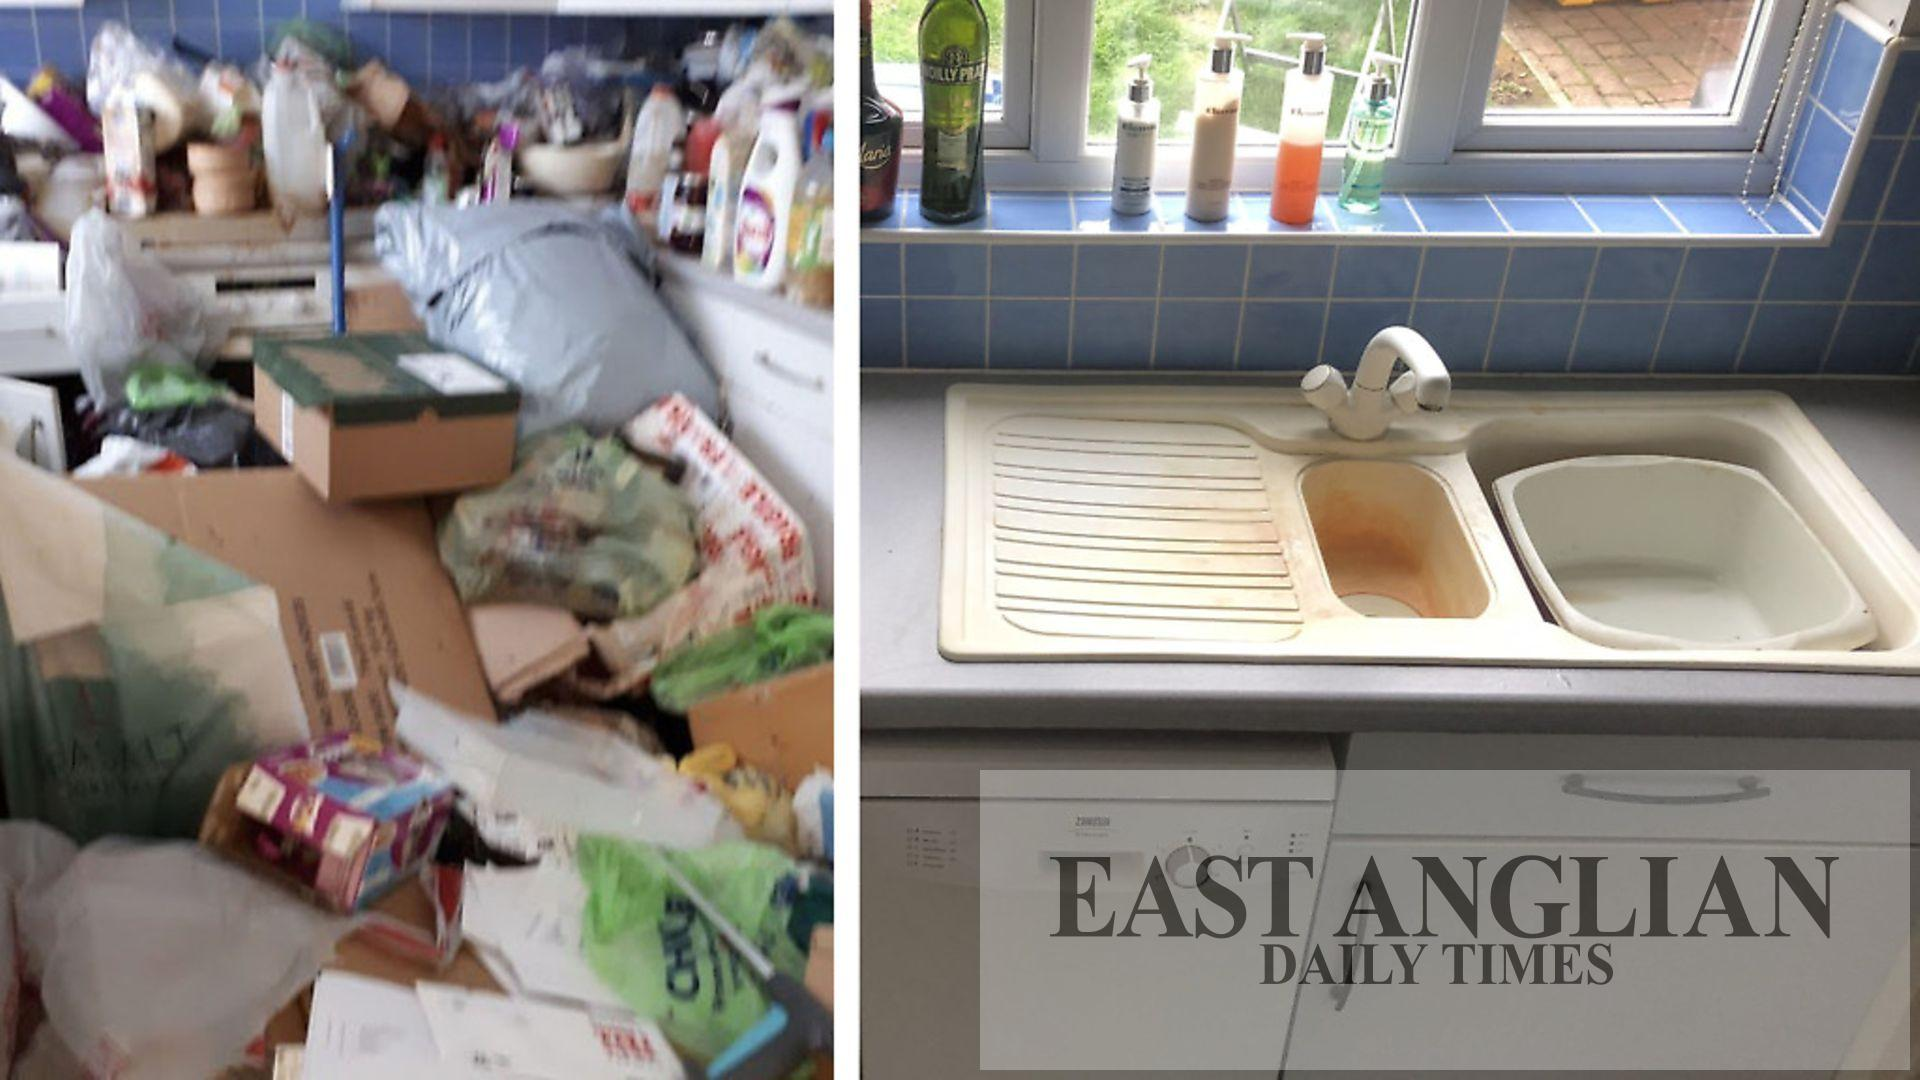 The Story Of A Hoarder Woman In Suffolk Is Helped By Lofty Heights East Anglian Daily Times